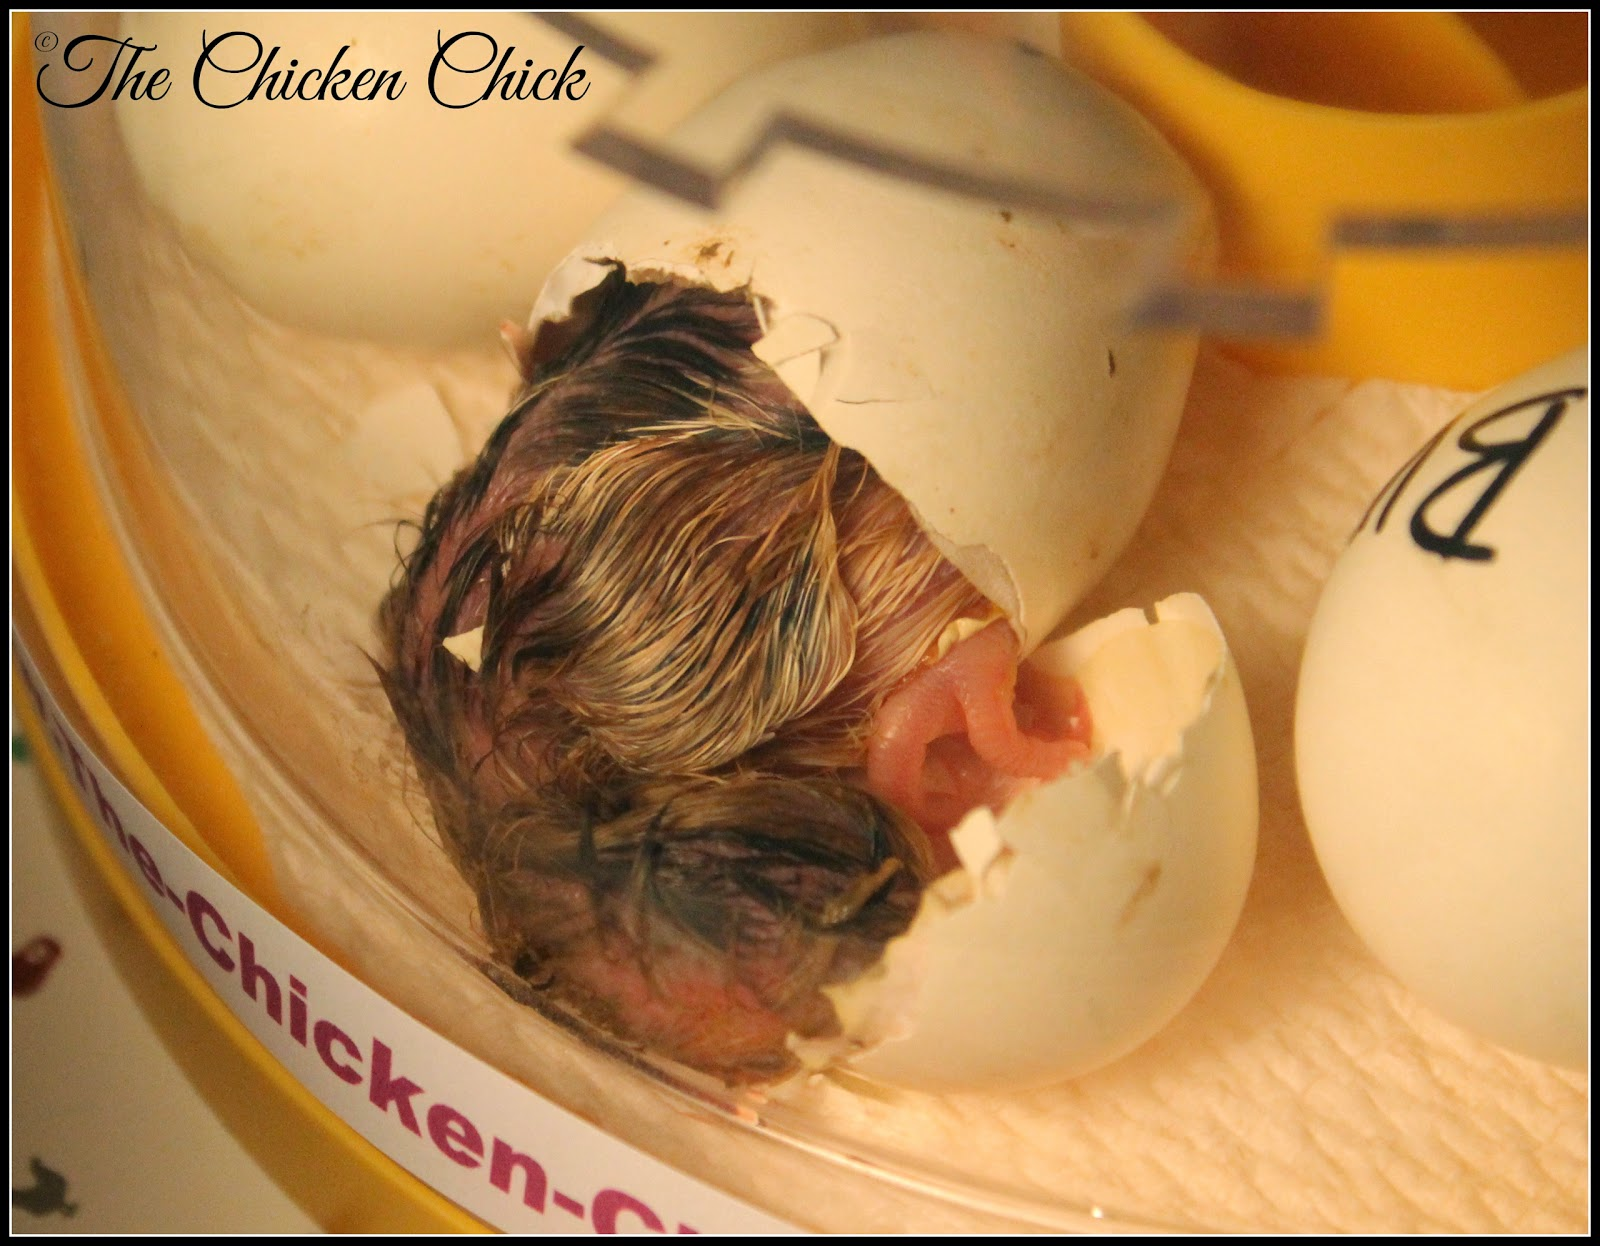 chick hatching in Brinsea Mini Advance incubator